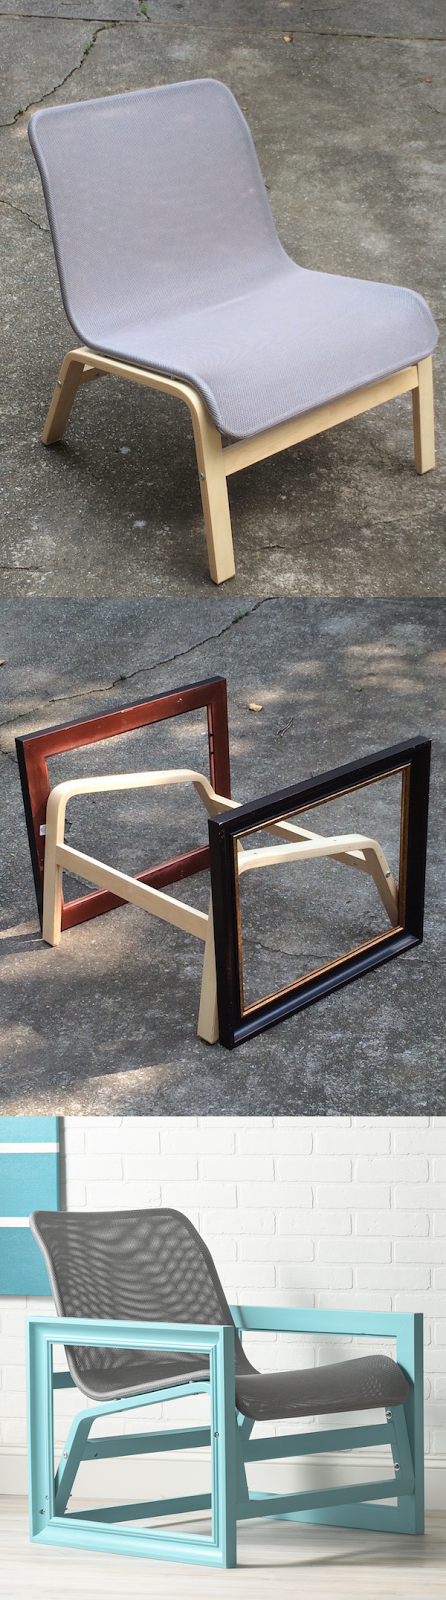 IKEA Hack: Photo Frame Chair